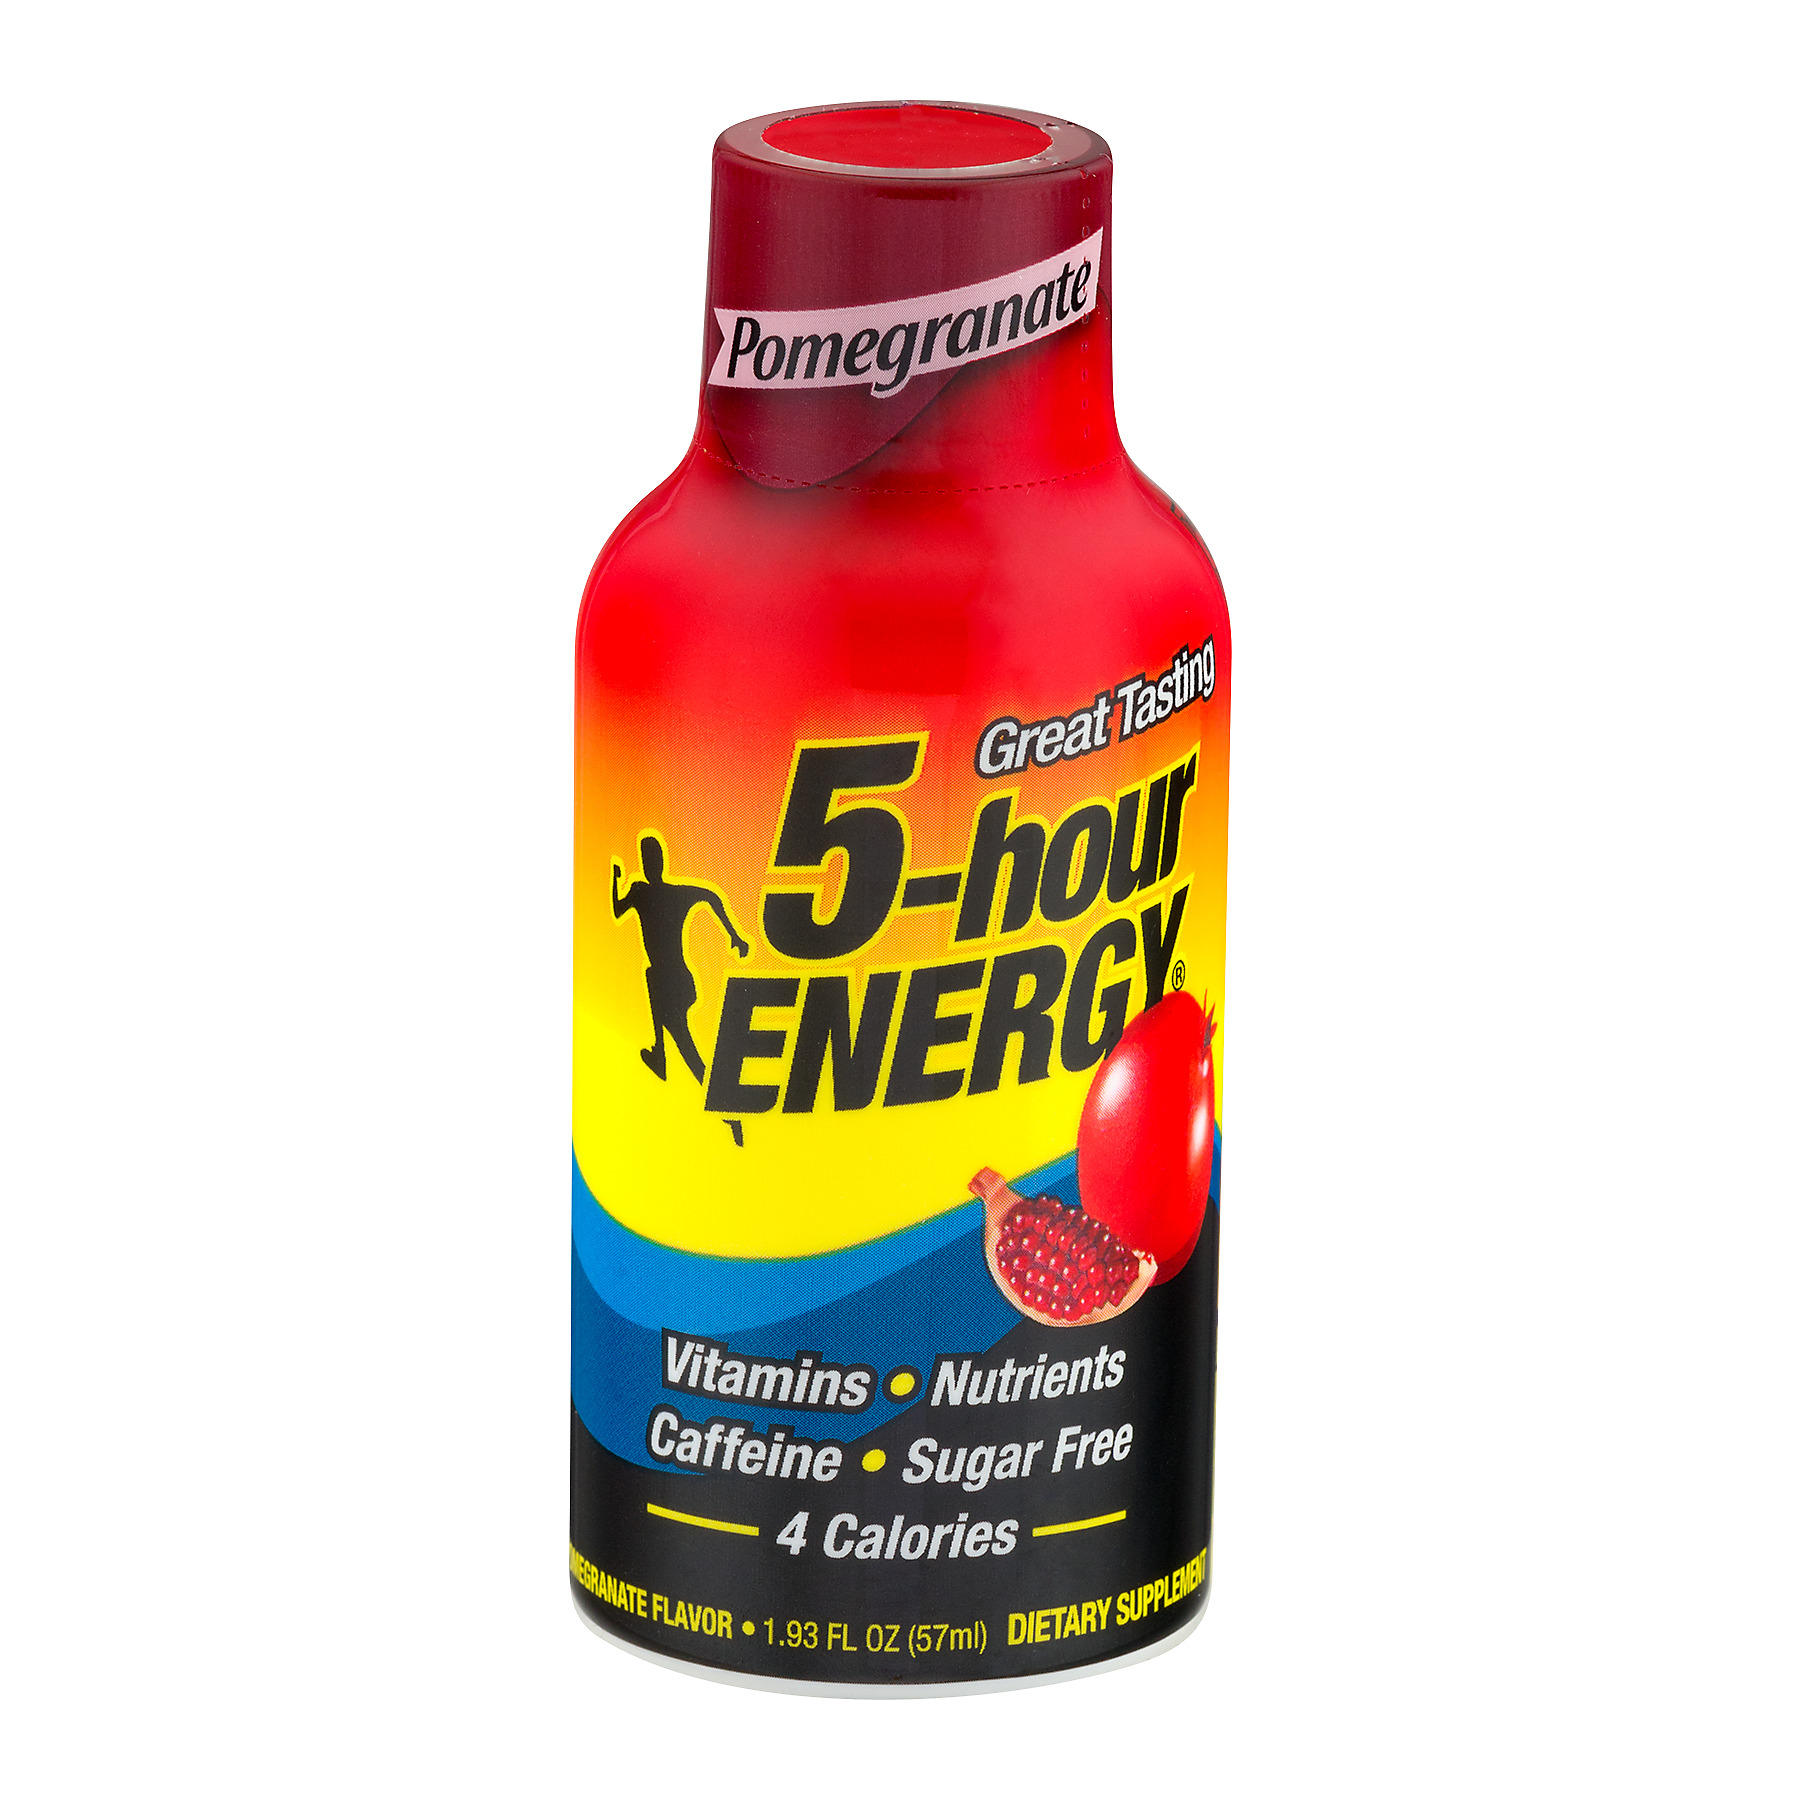 5-Hour Energy Dietary Supplement Pomegranate, 1.93 FL OZ